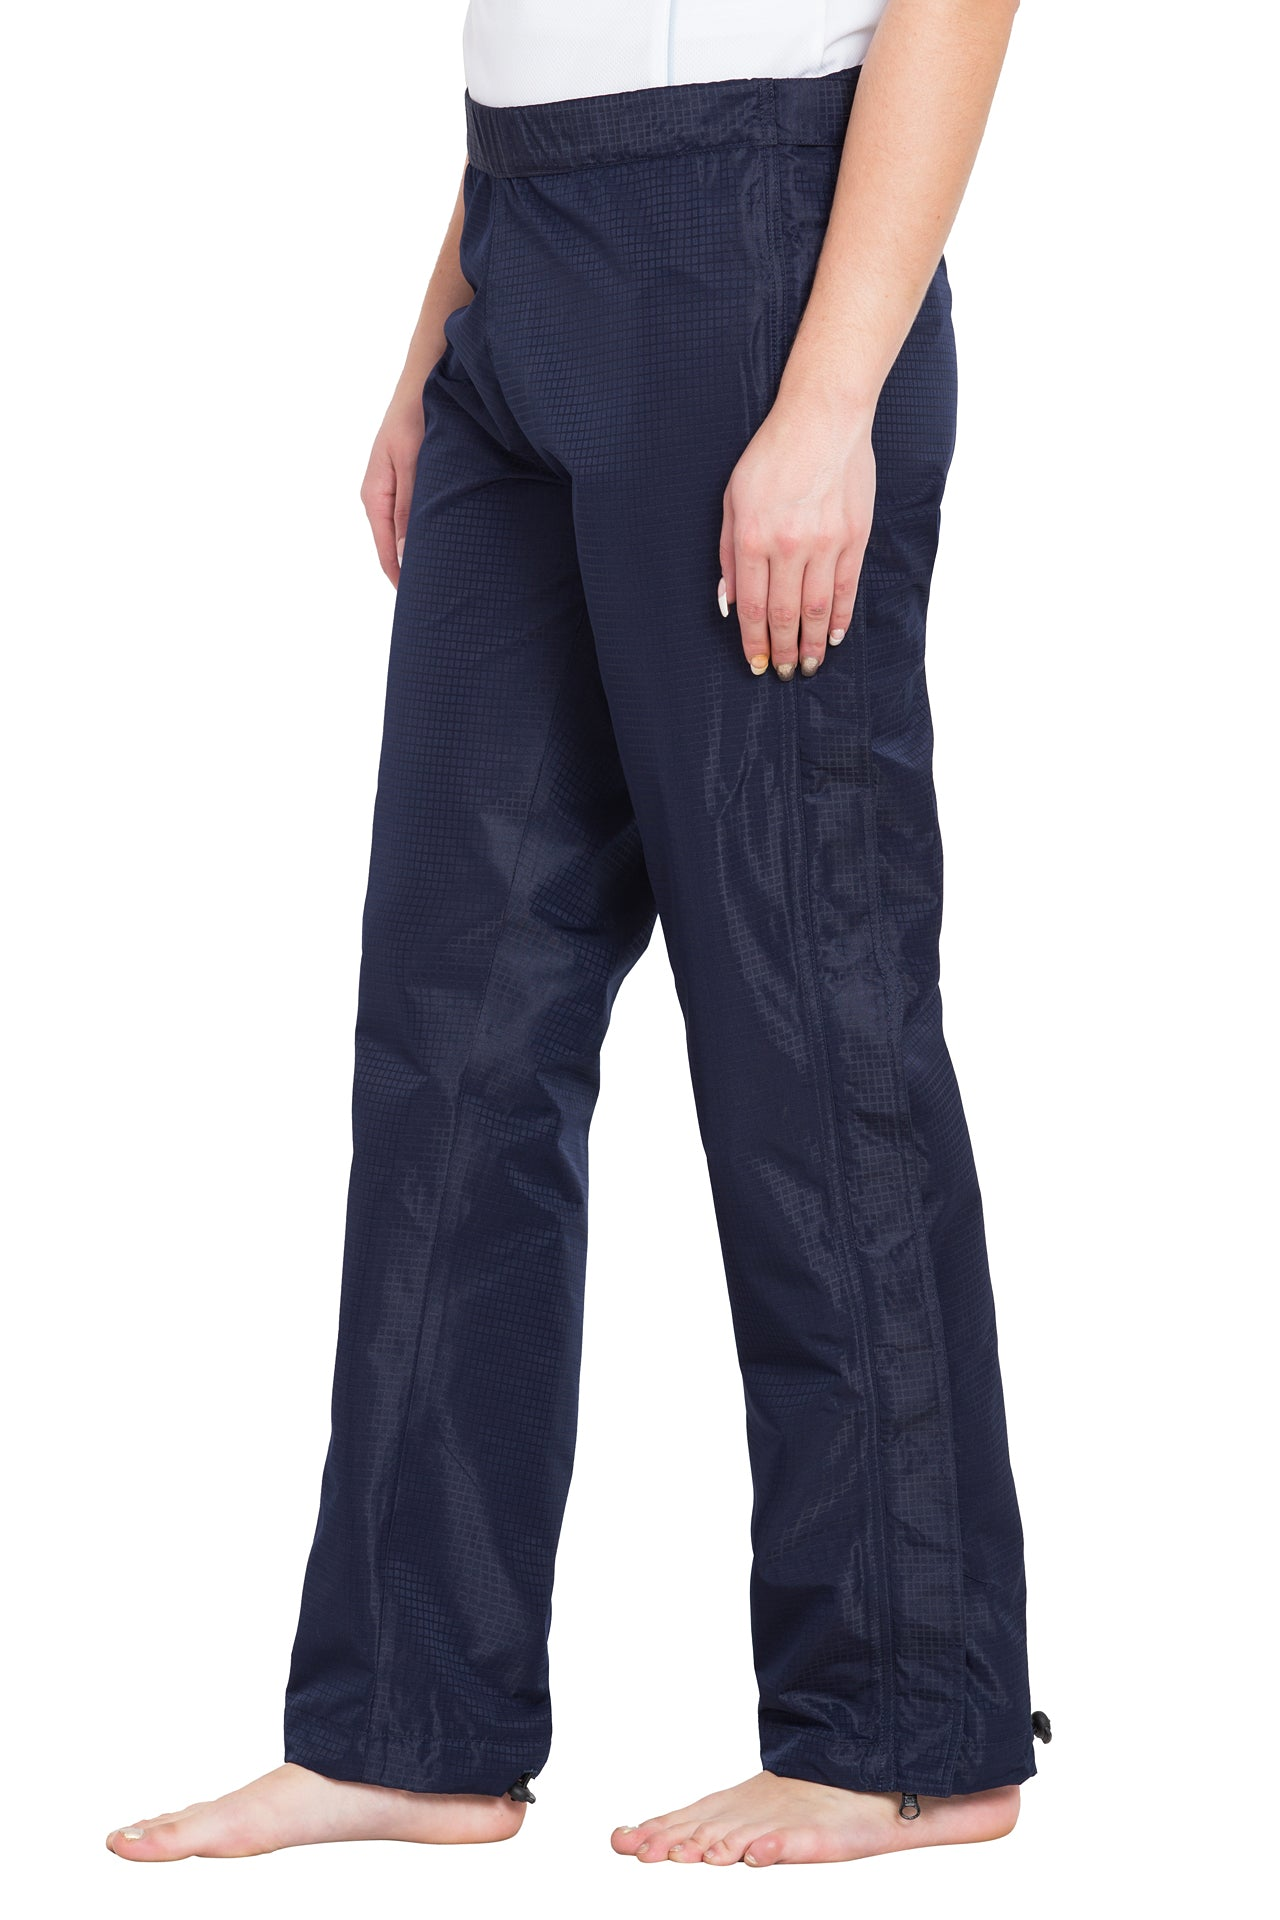 Equine Couture Ladies Spinnaker Rain Shell Pant_4836